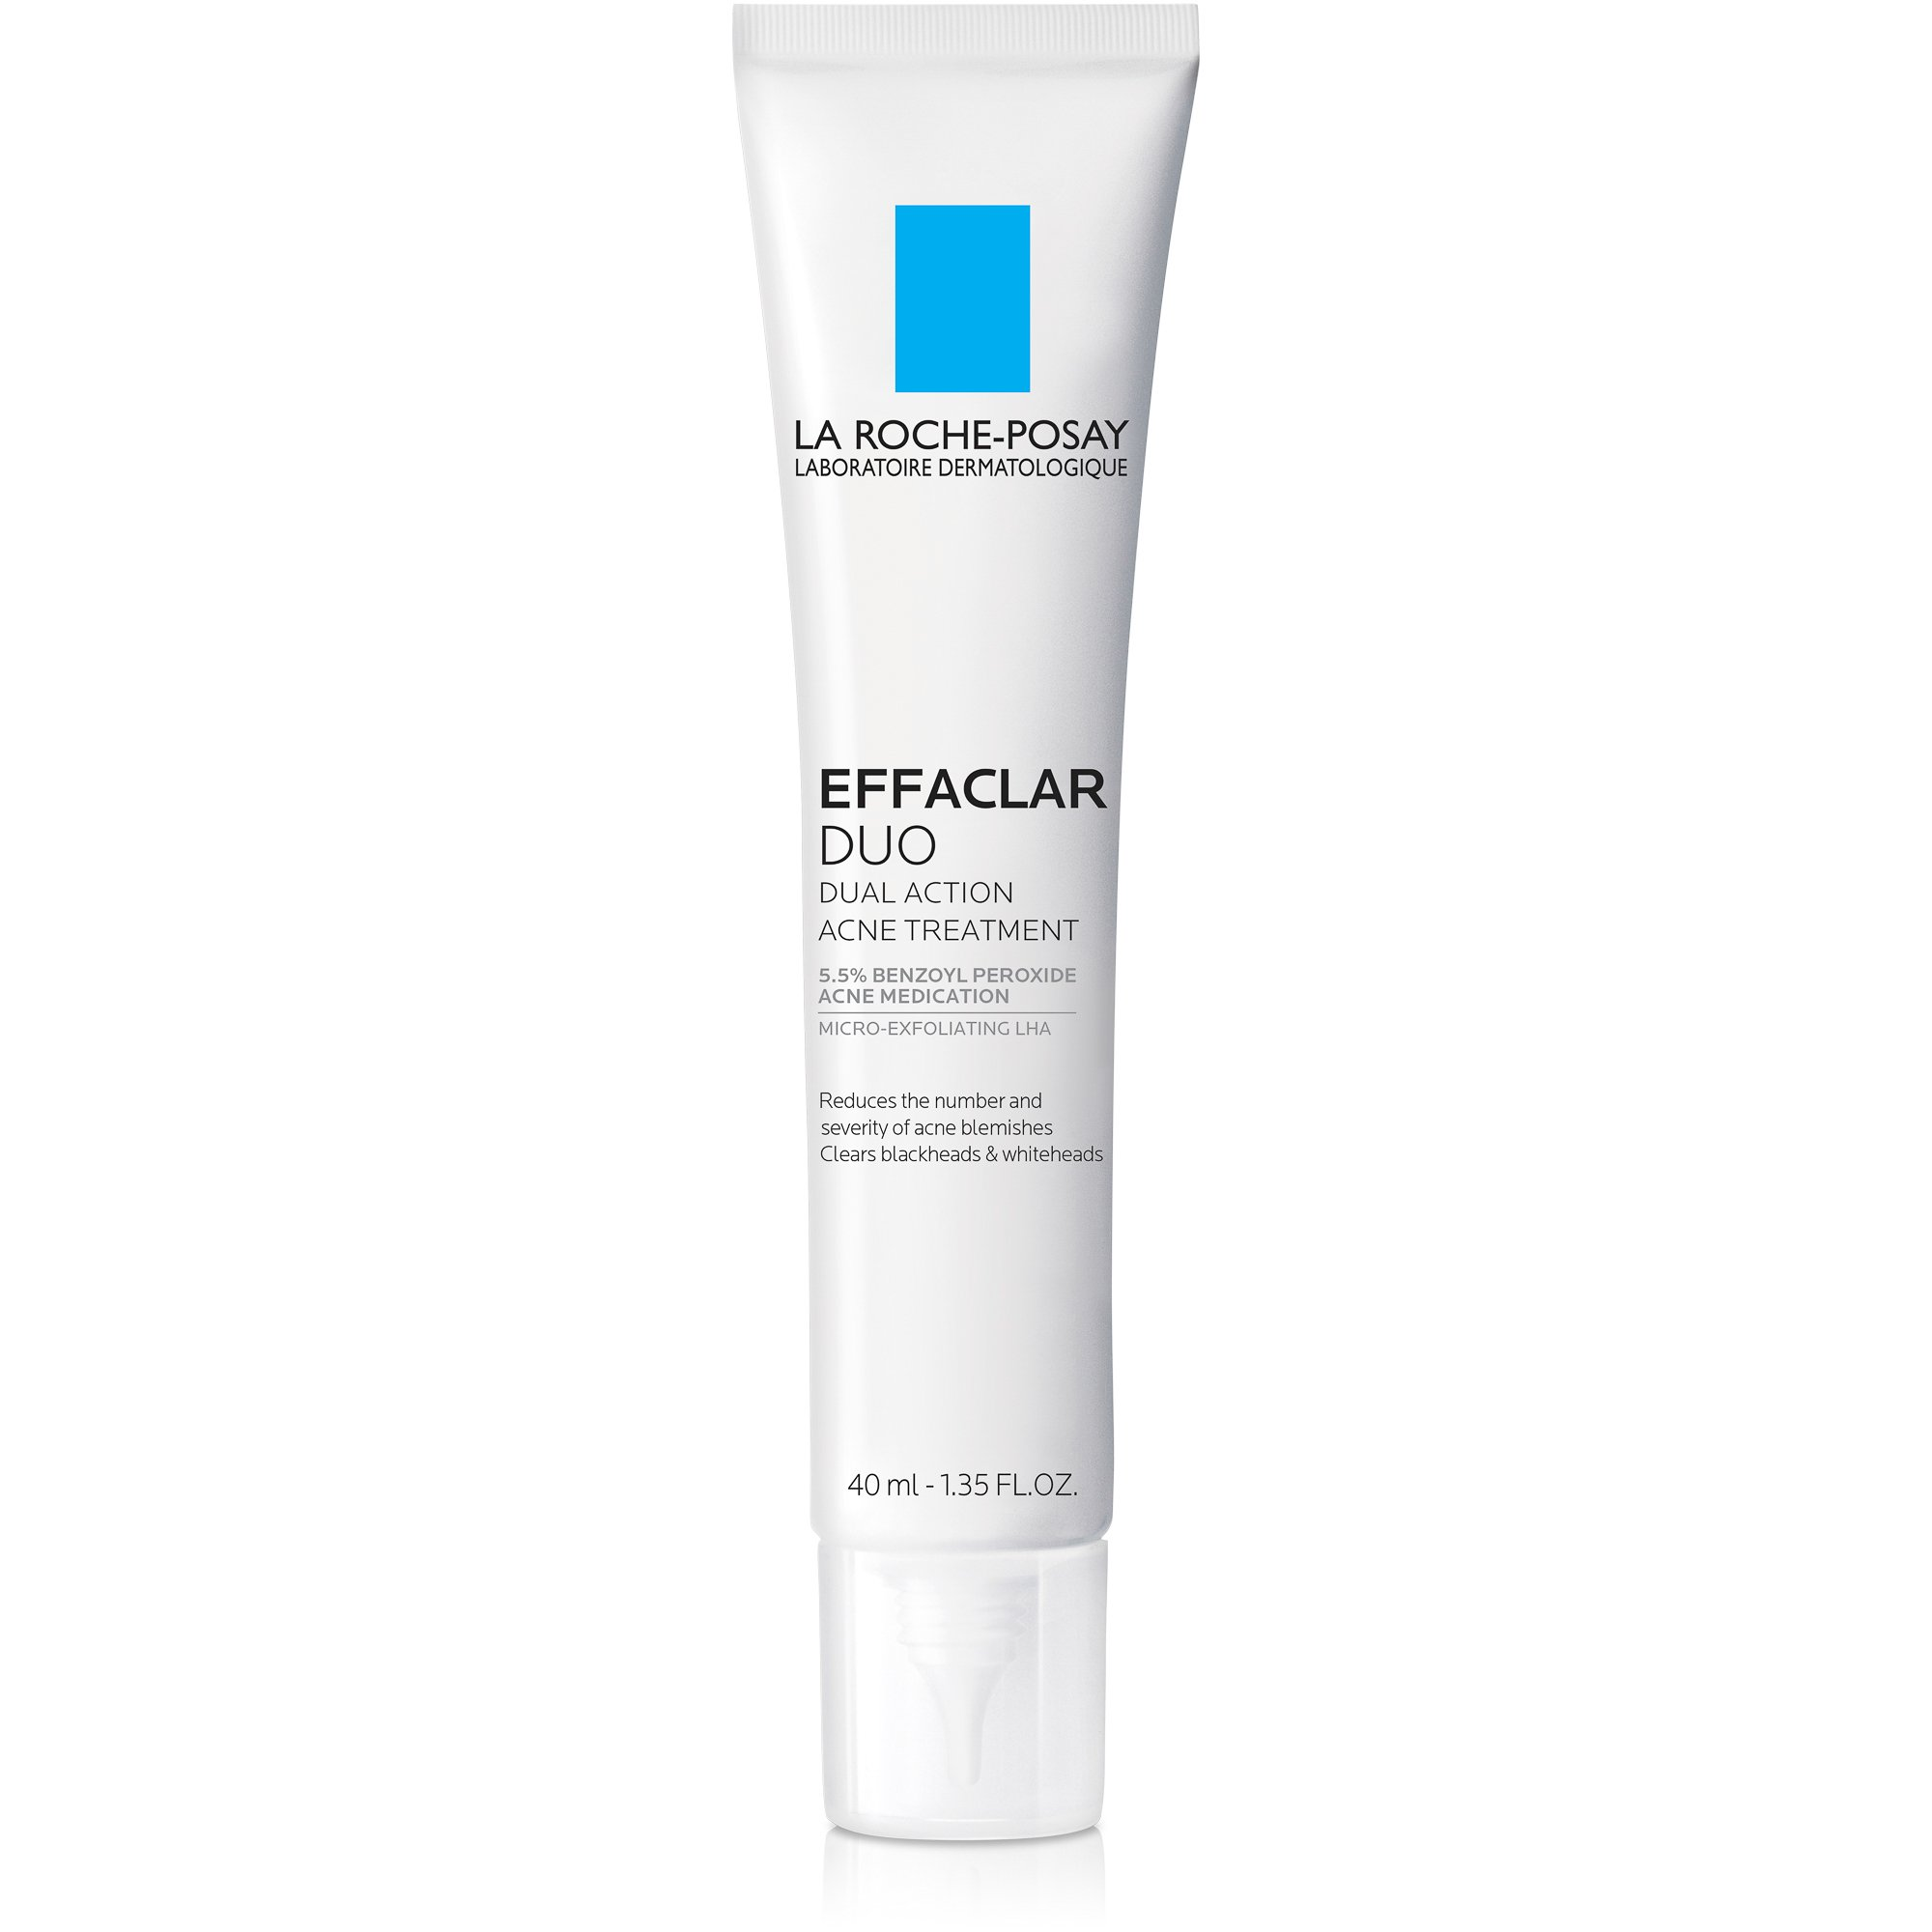 la roche posay effaclar micro exfoliating. Black Bedroom Furniture Sets. Home Design Ideas